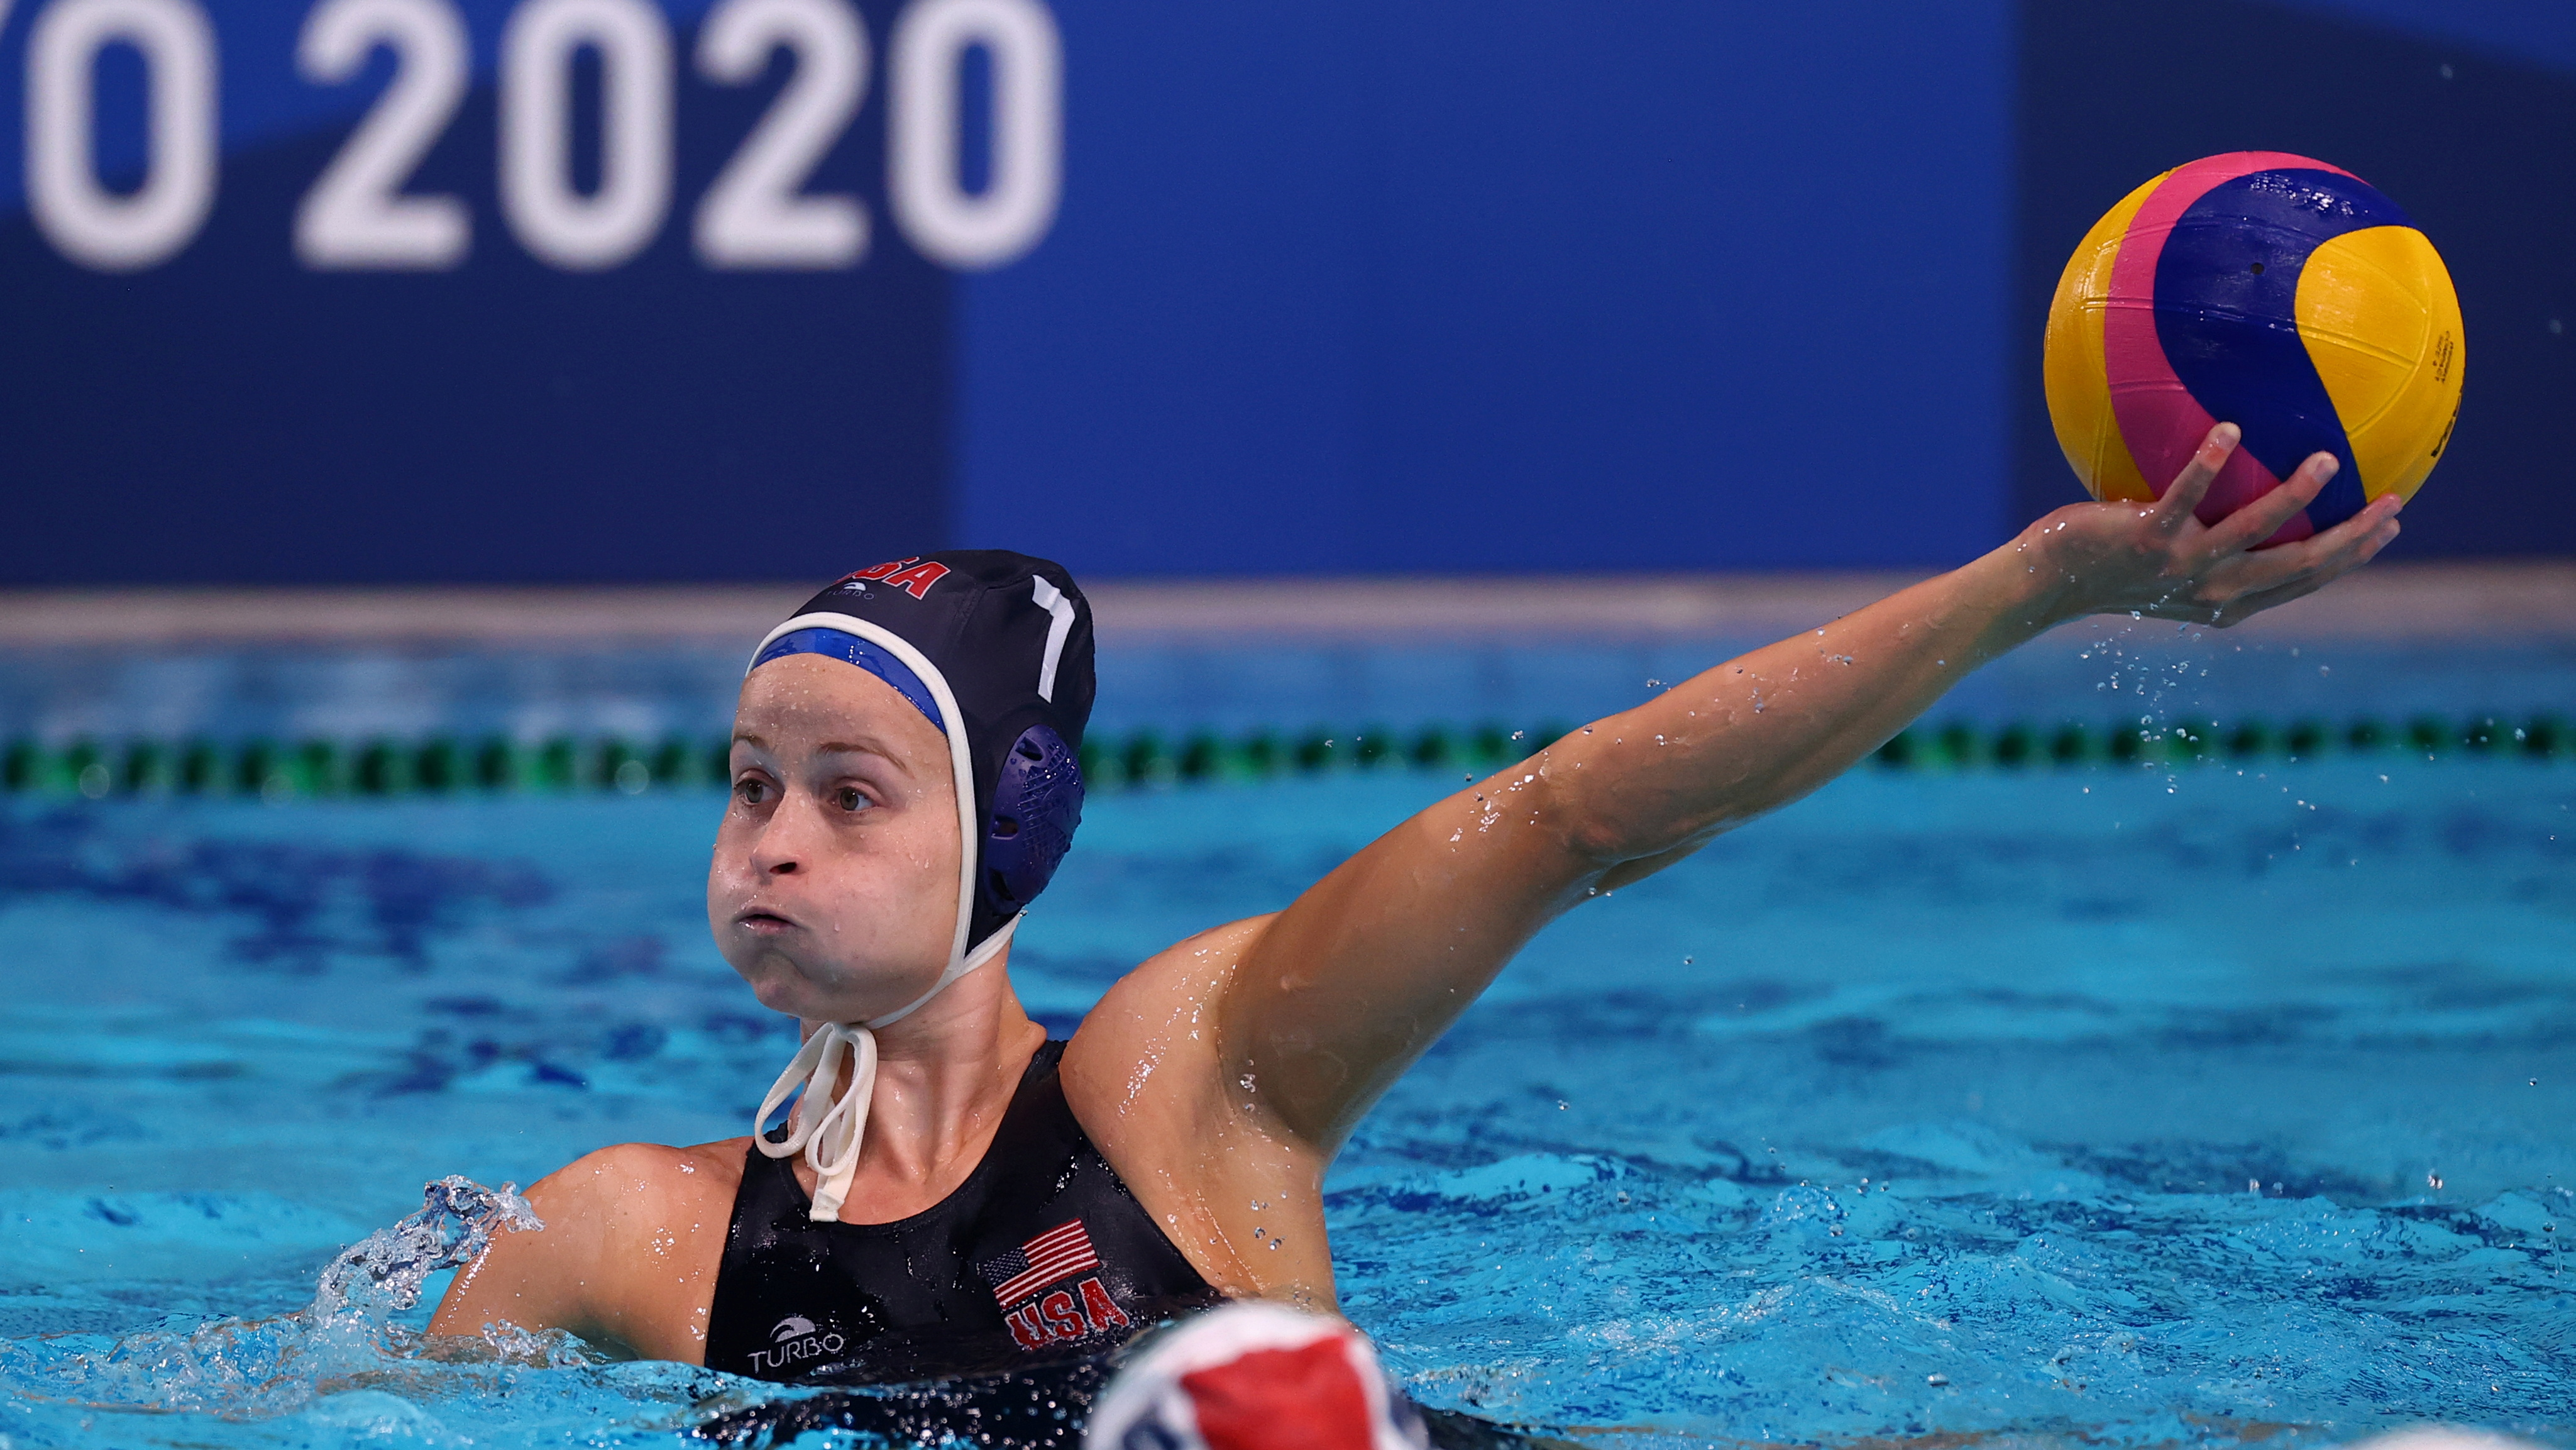 Tokyo 2020 Olympics - Water Polo - Women - Group B - Hungary v United States - Tatsumi Water Polo Centre, Tokyo, Japan - July 28, 2021. Stephanie Haralabidis of the United States in action. REUTERS/Kacper Pempel